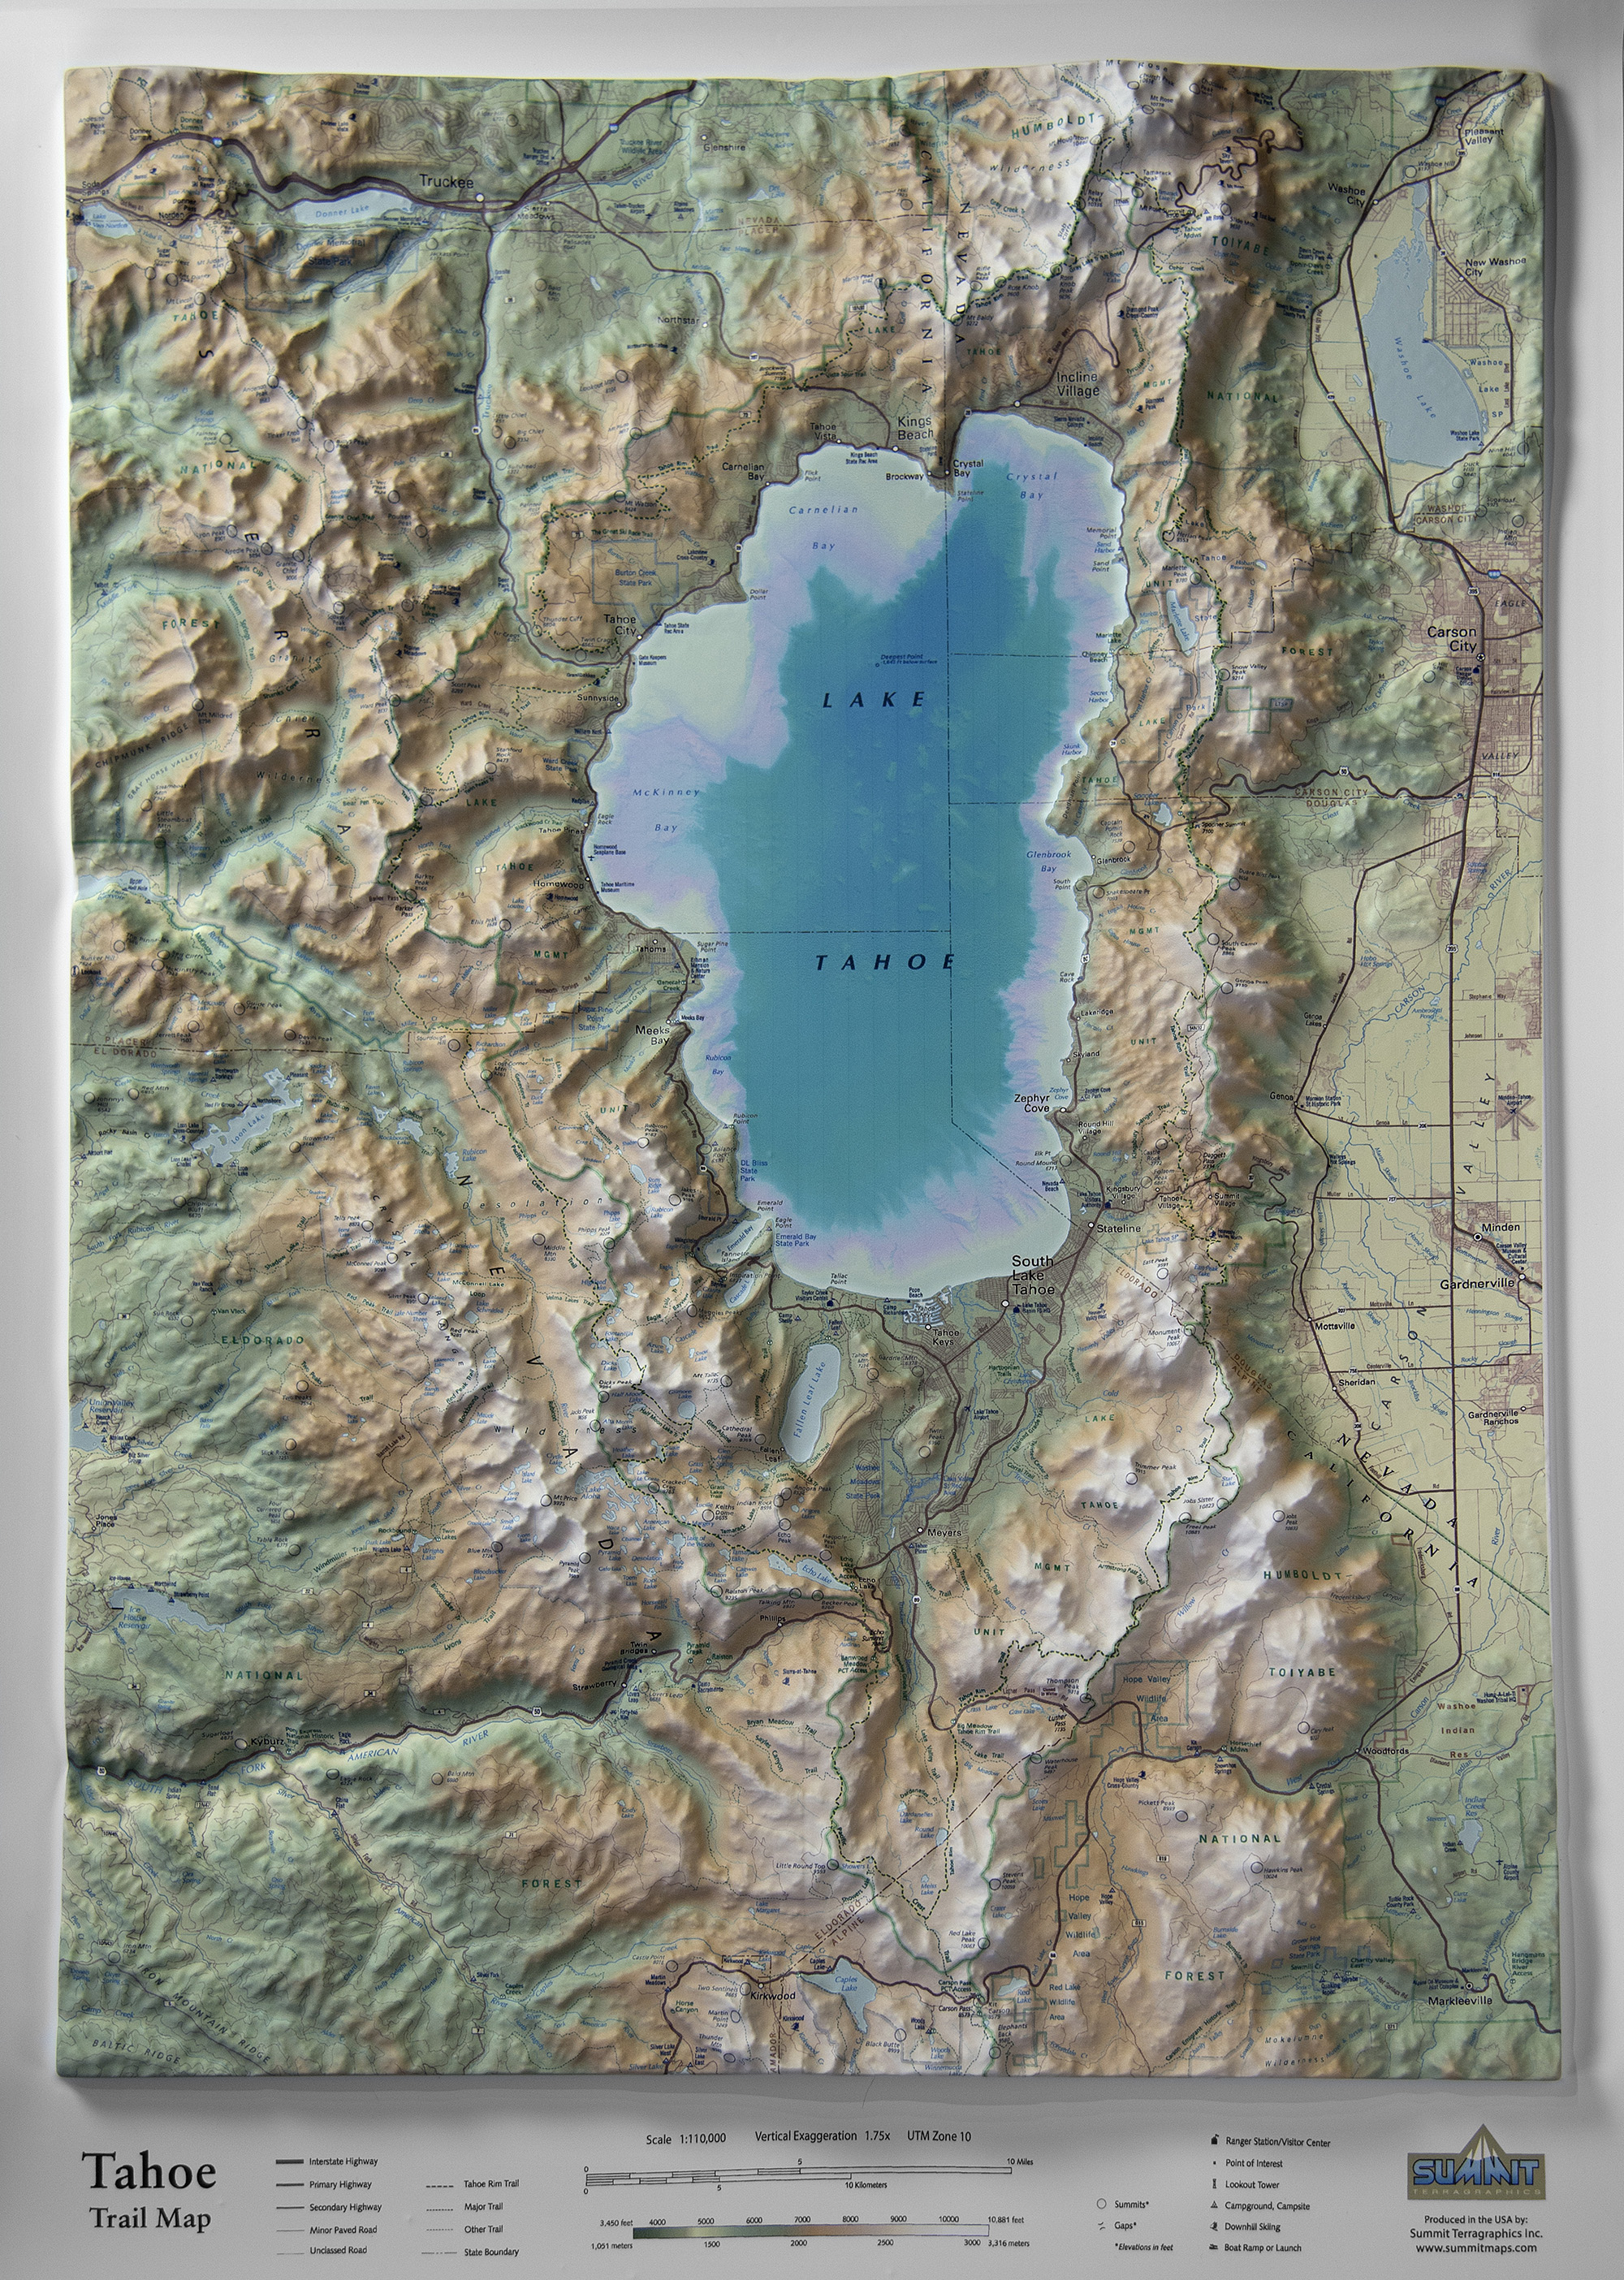 Tahoe Trail Map in 3D raised relief - Summit Maps